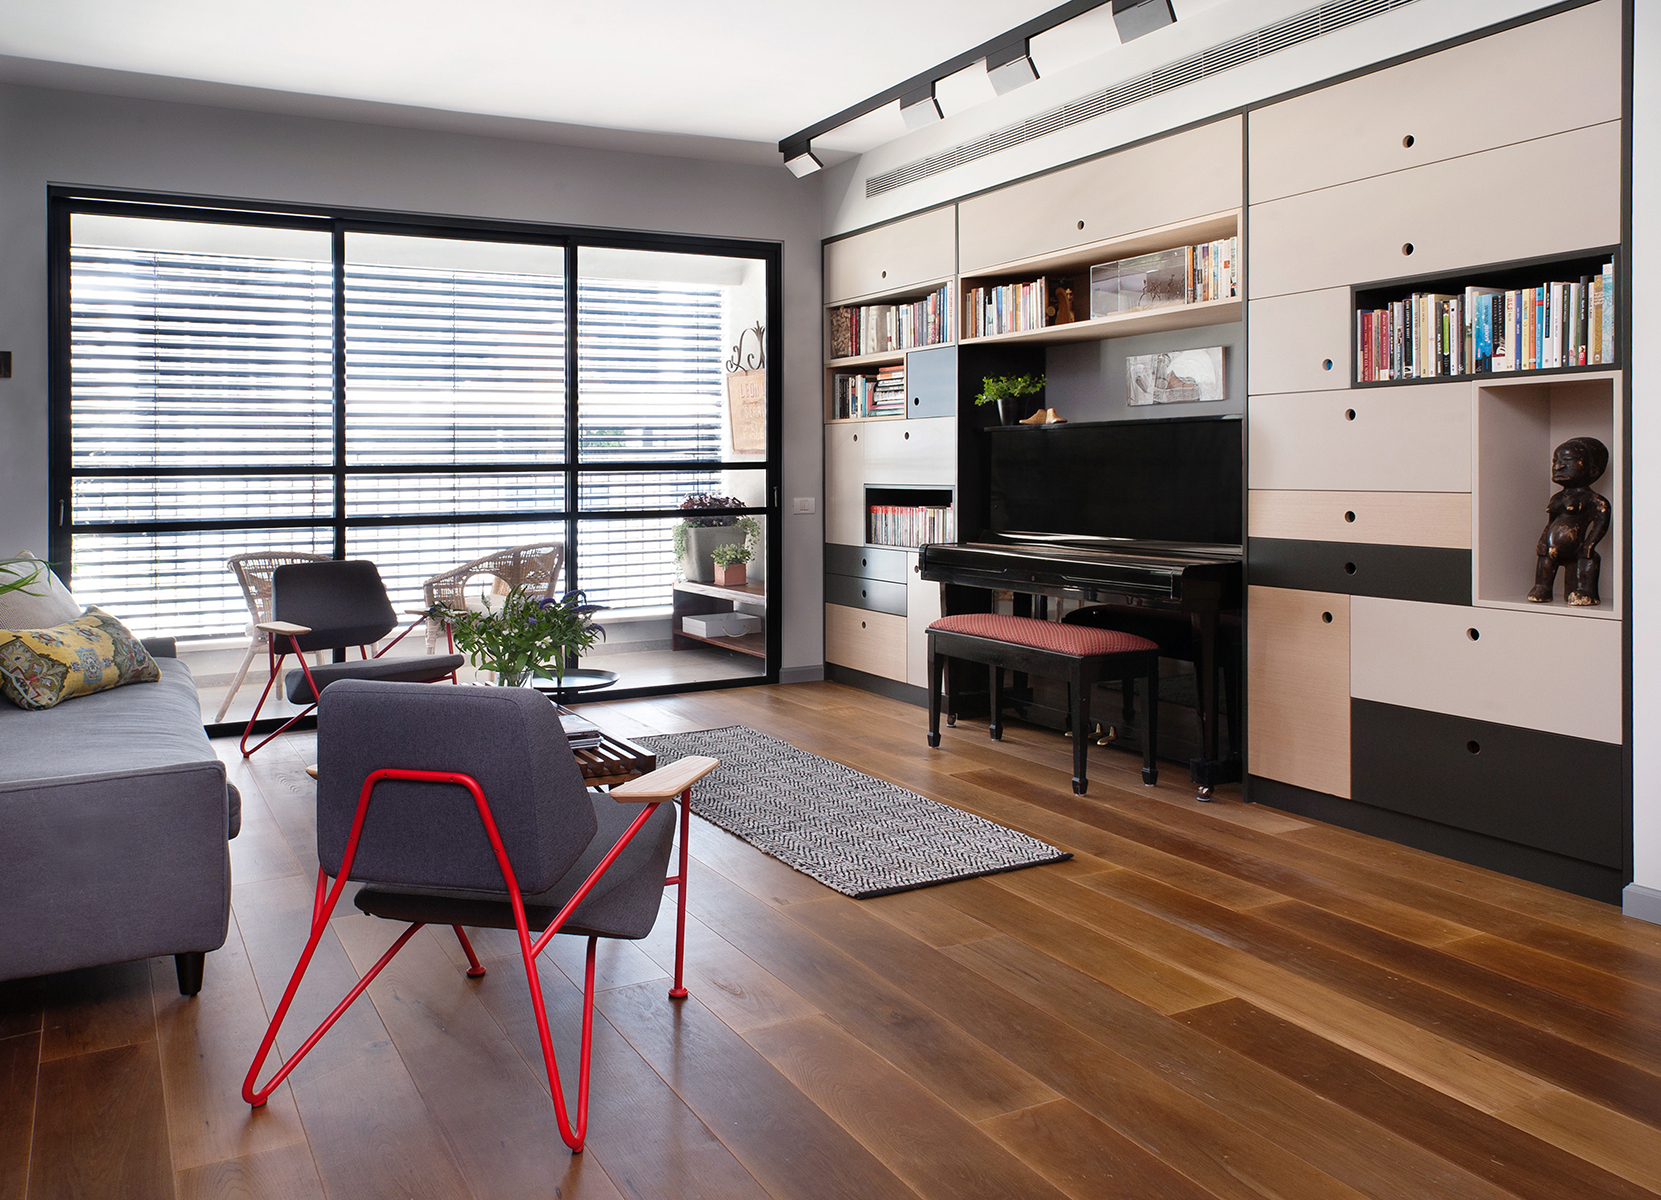 Apartment Y&A by Vered Bonfiglioli